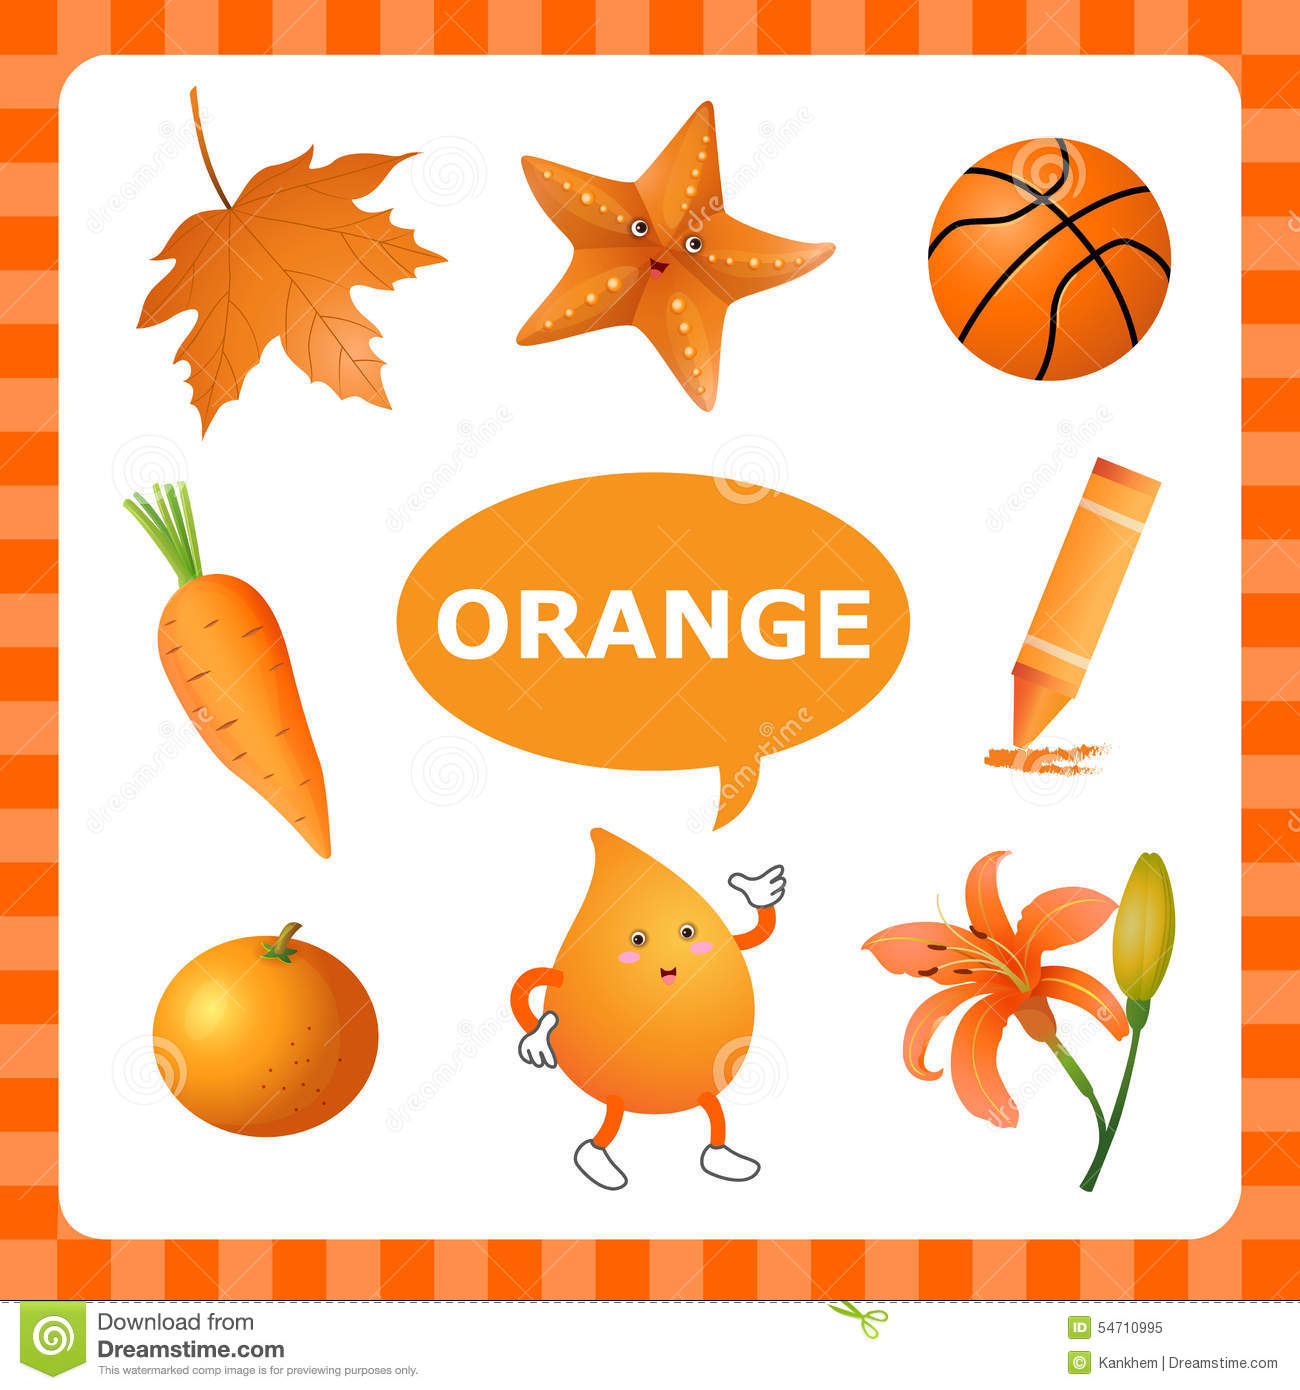 Learning Orangecolor Stock Vector Illustration Of Orange